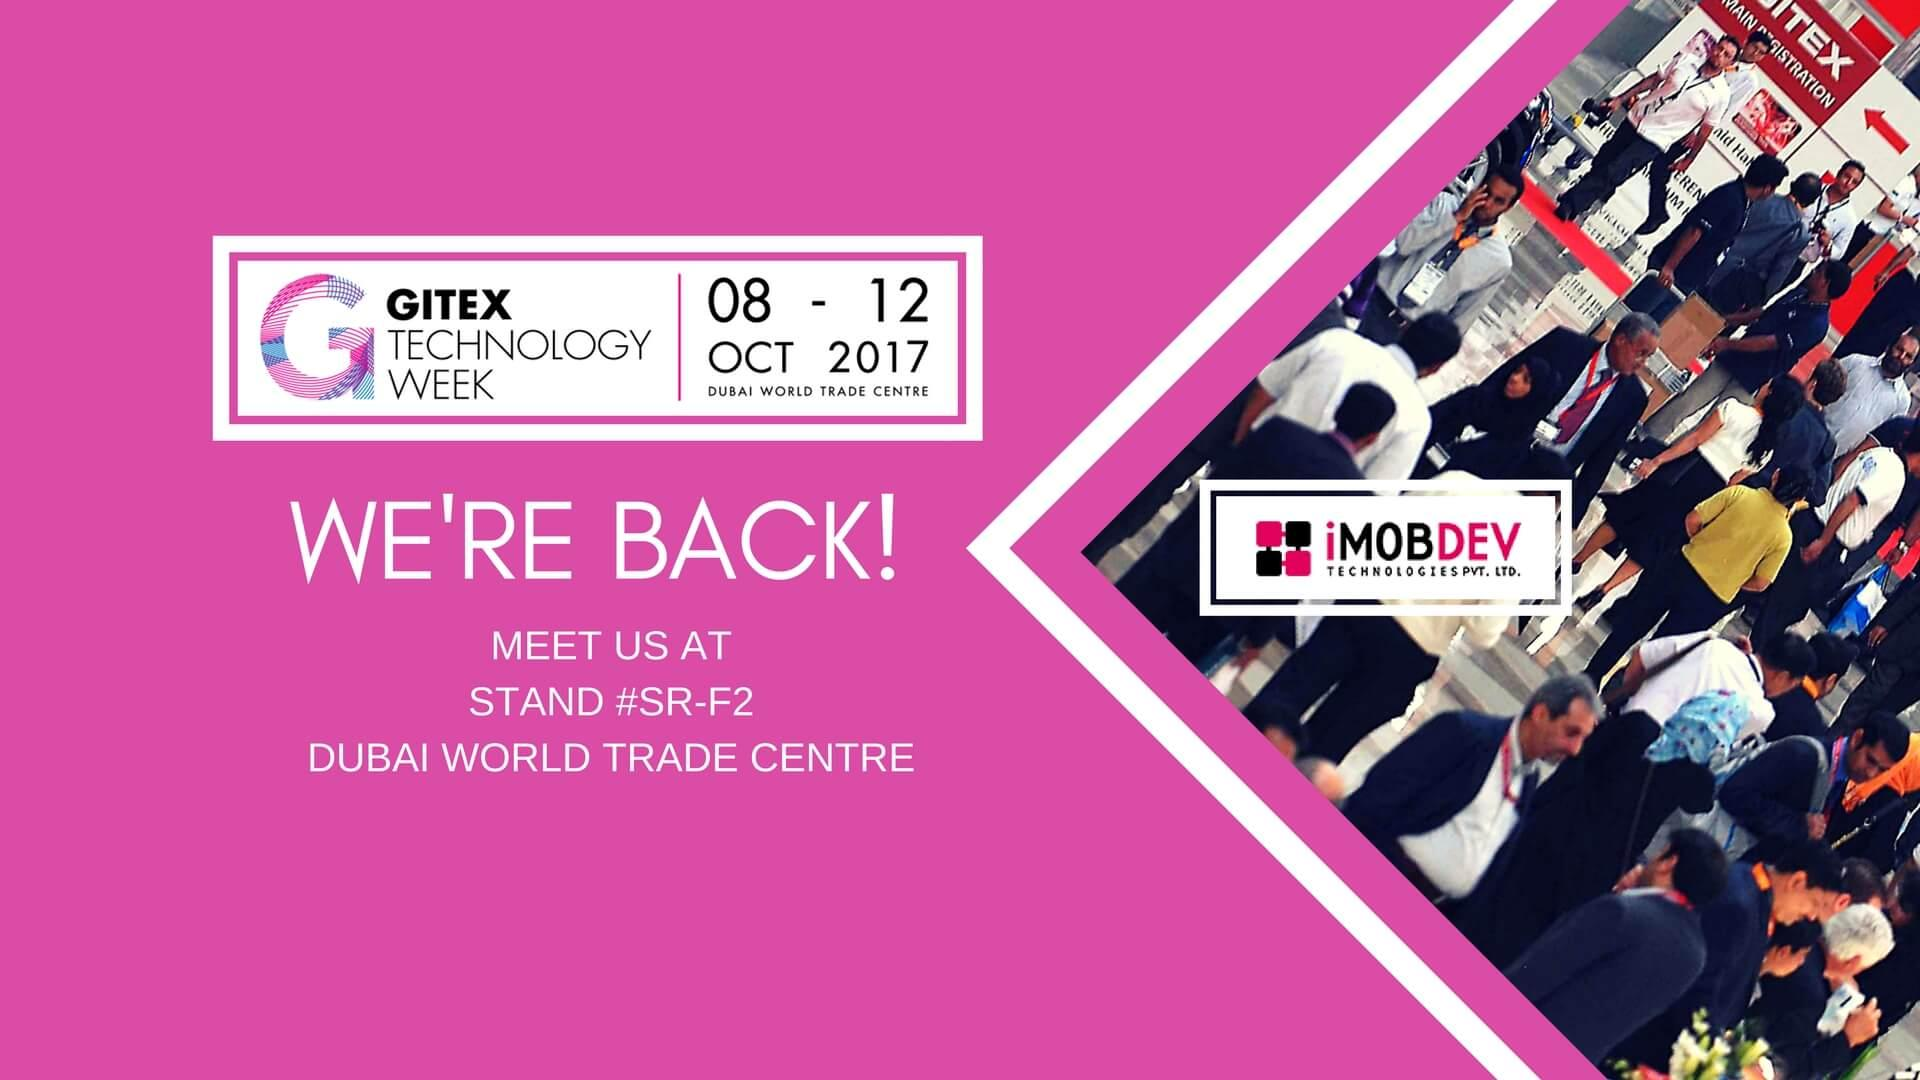 Come and meet us @ GITEX Technology Week 2017